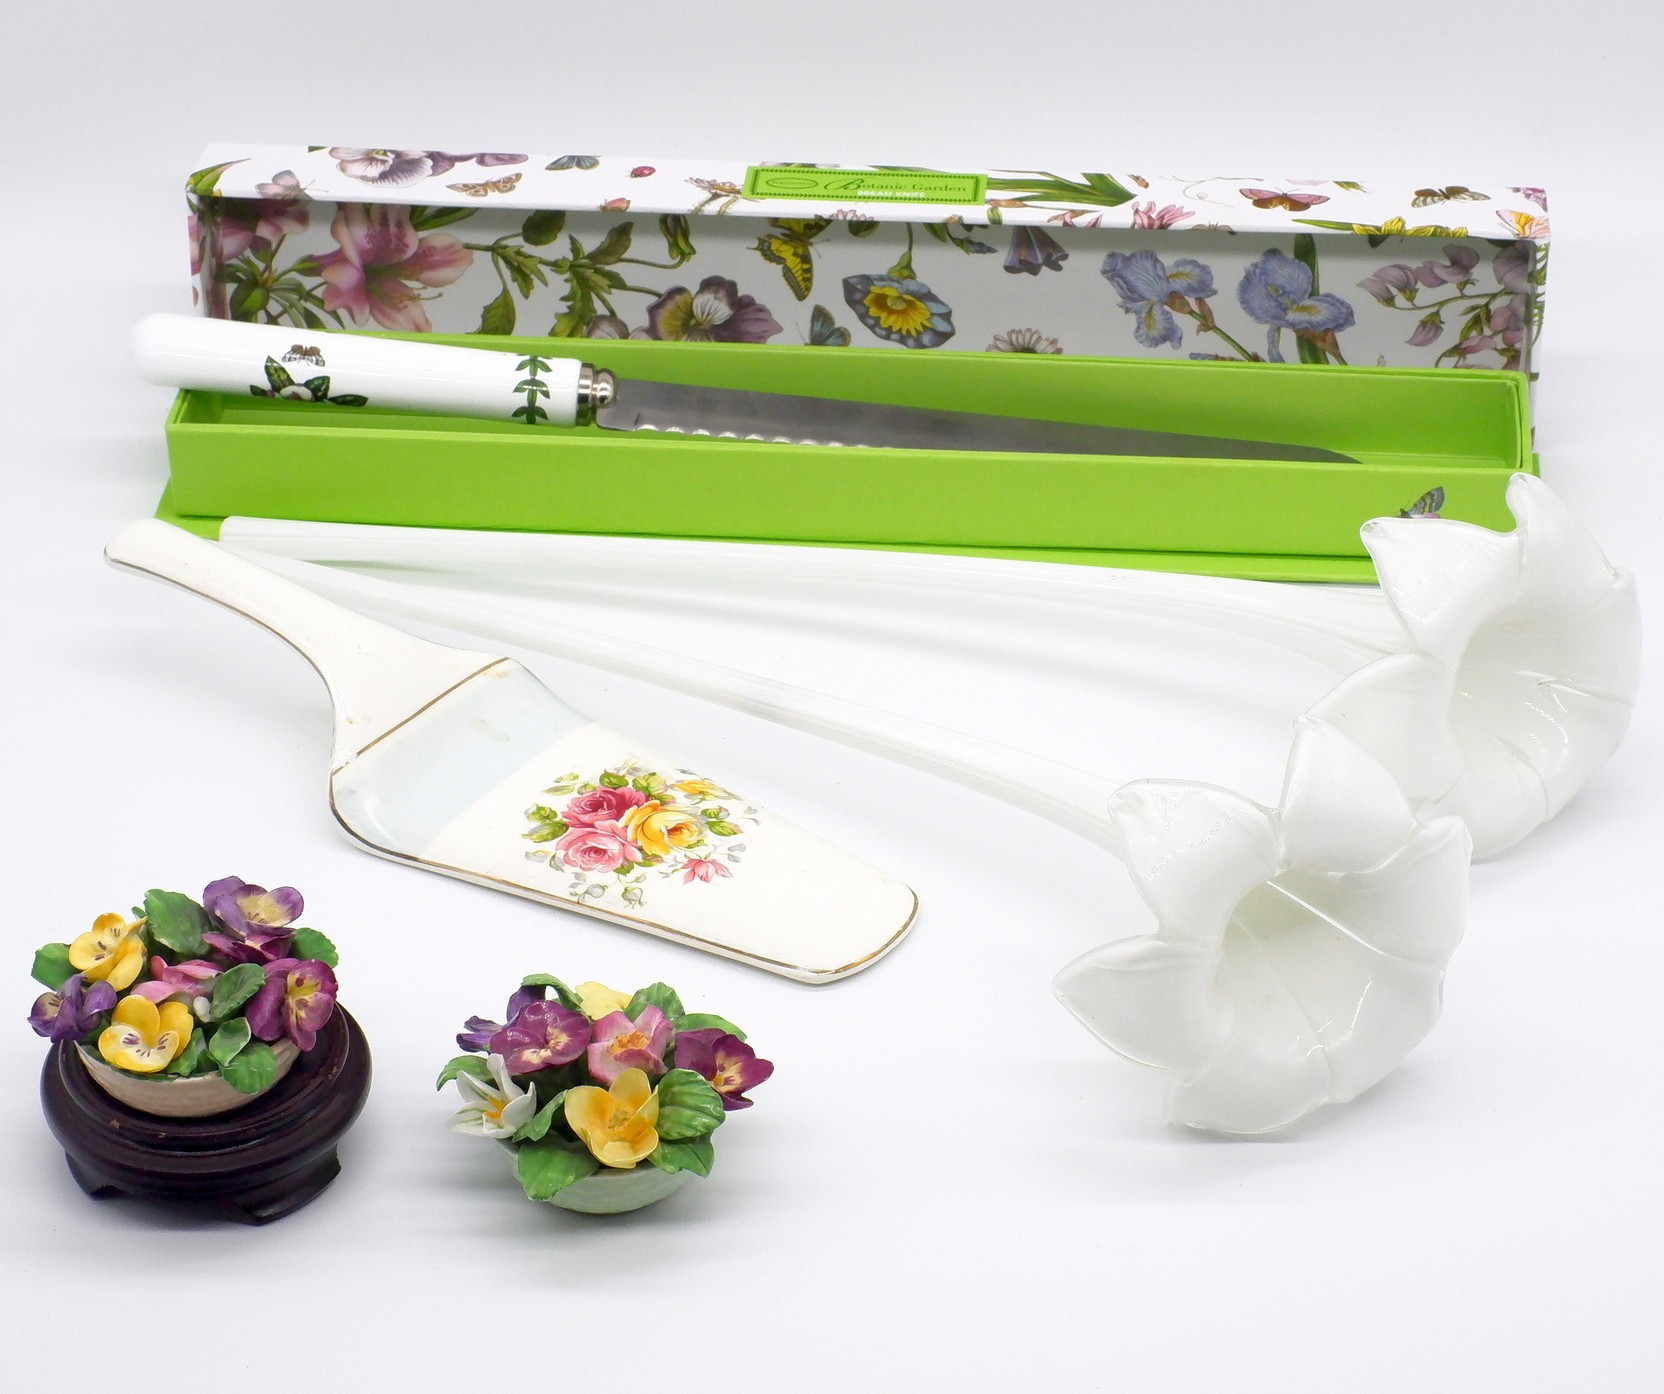 'Two Porcelain Bouquets, English Cake Slice, Portmeirion Knife and Two Glass Epergne Stems'